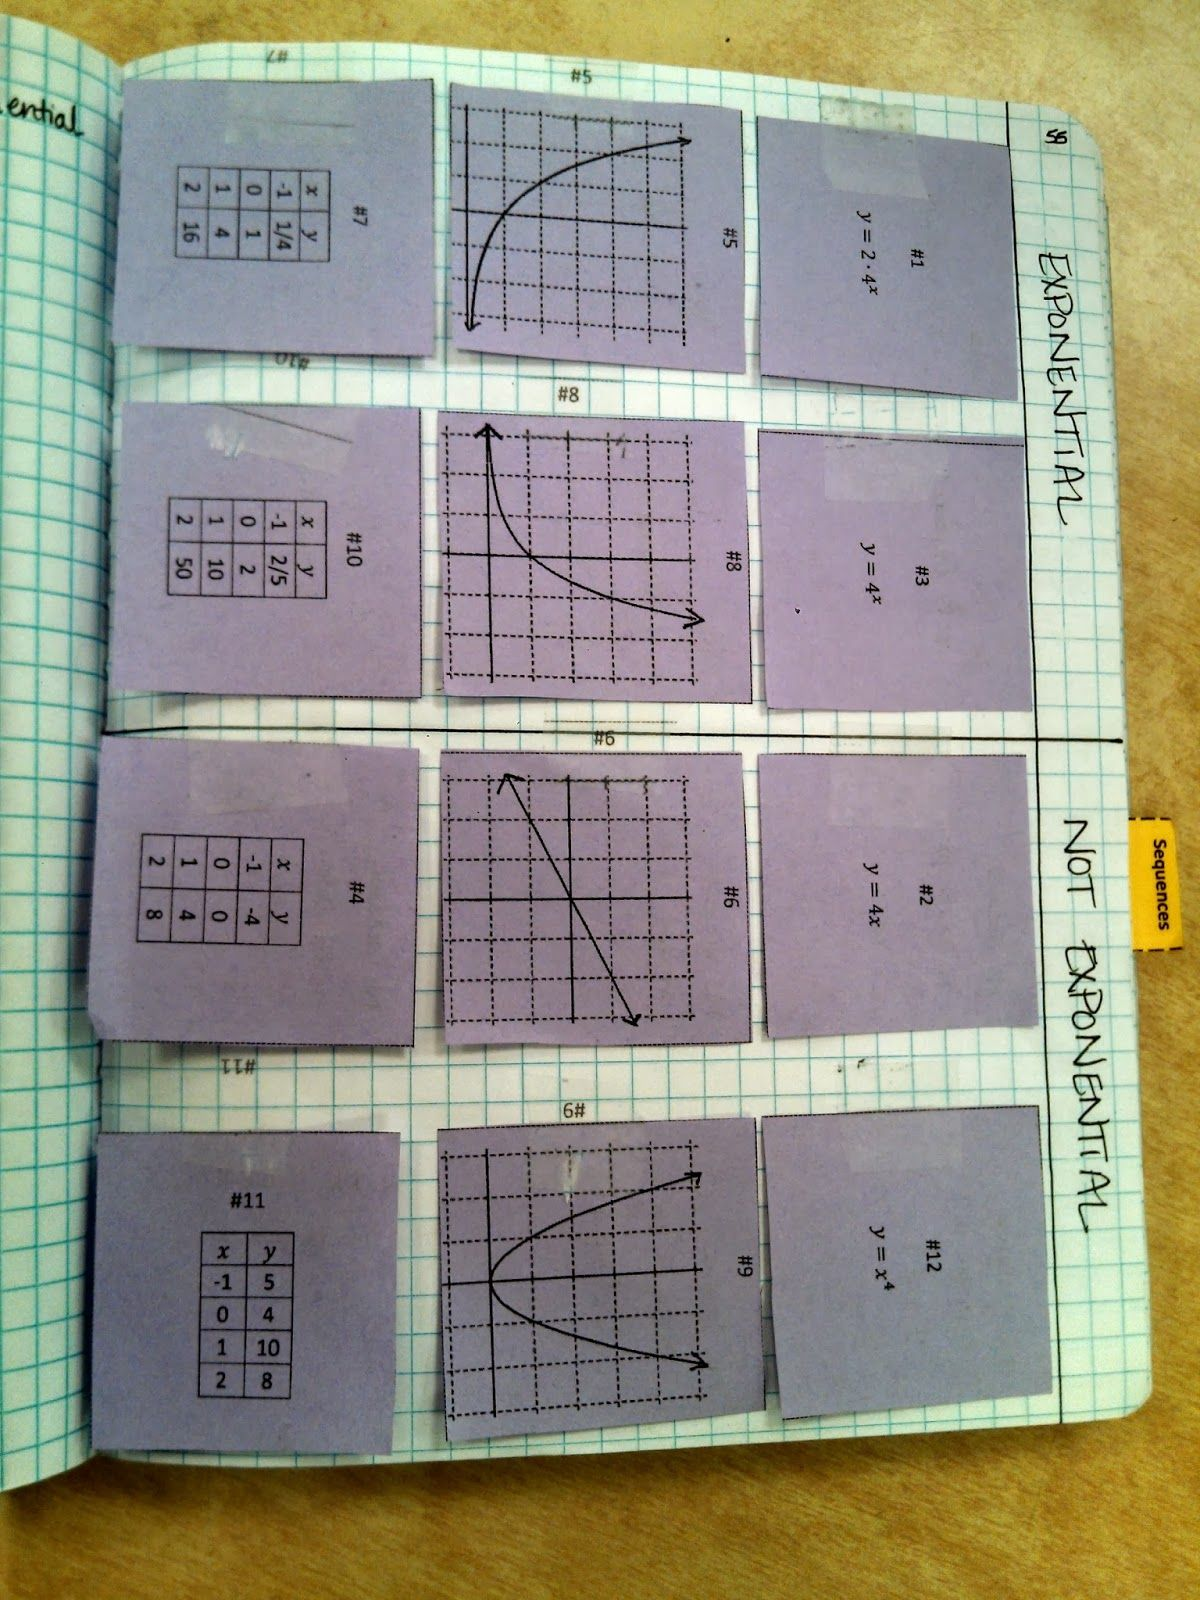 Card Sort For Exponential Functions Plus Other Materials